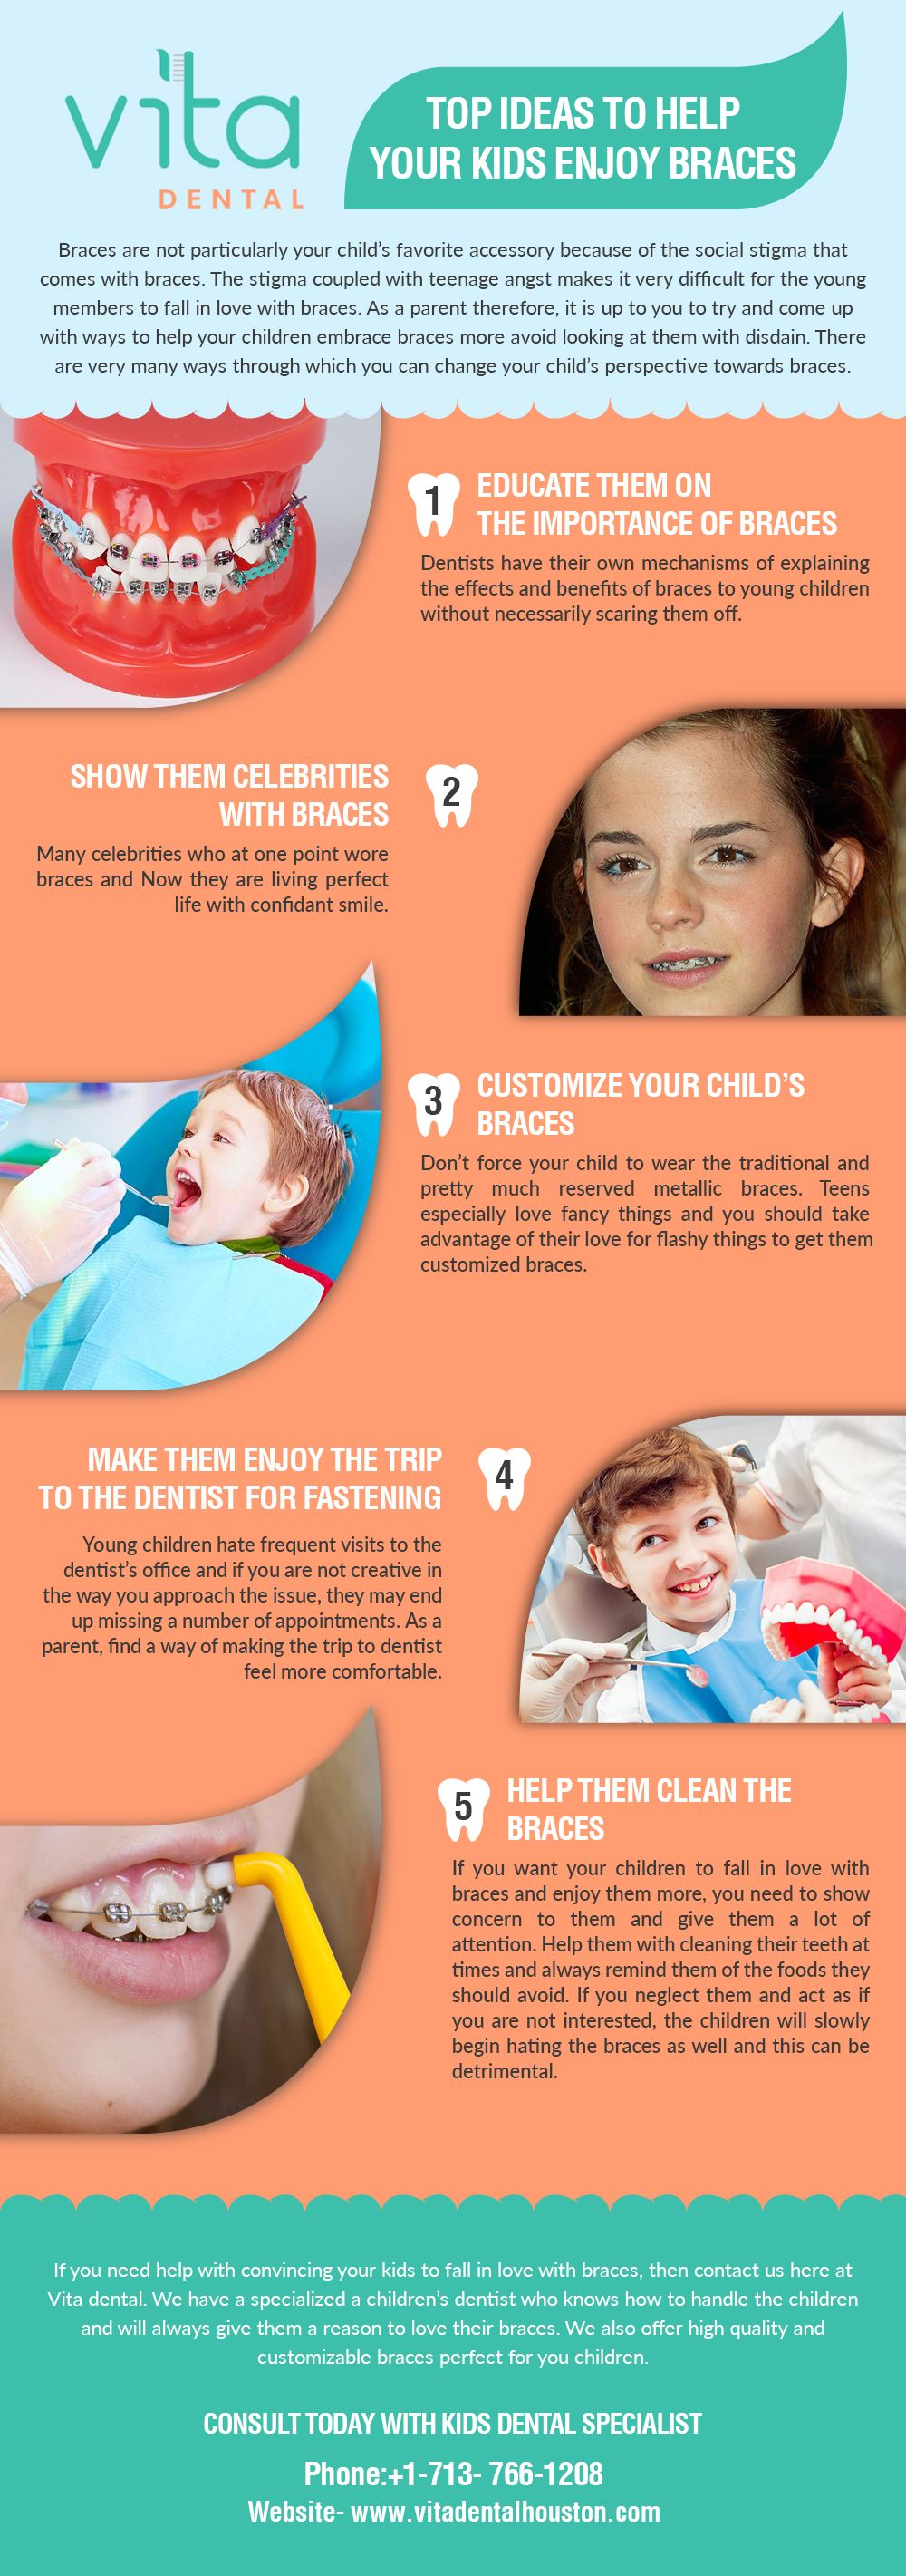 How To Make Your Own Braces : braces, Teenager, Interested, Dental, Braces,, Because, Social, Stigma, Comes, Braces., Braces, Dentist,